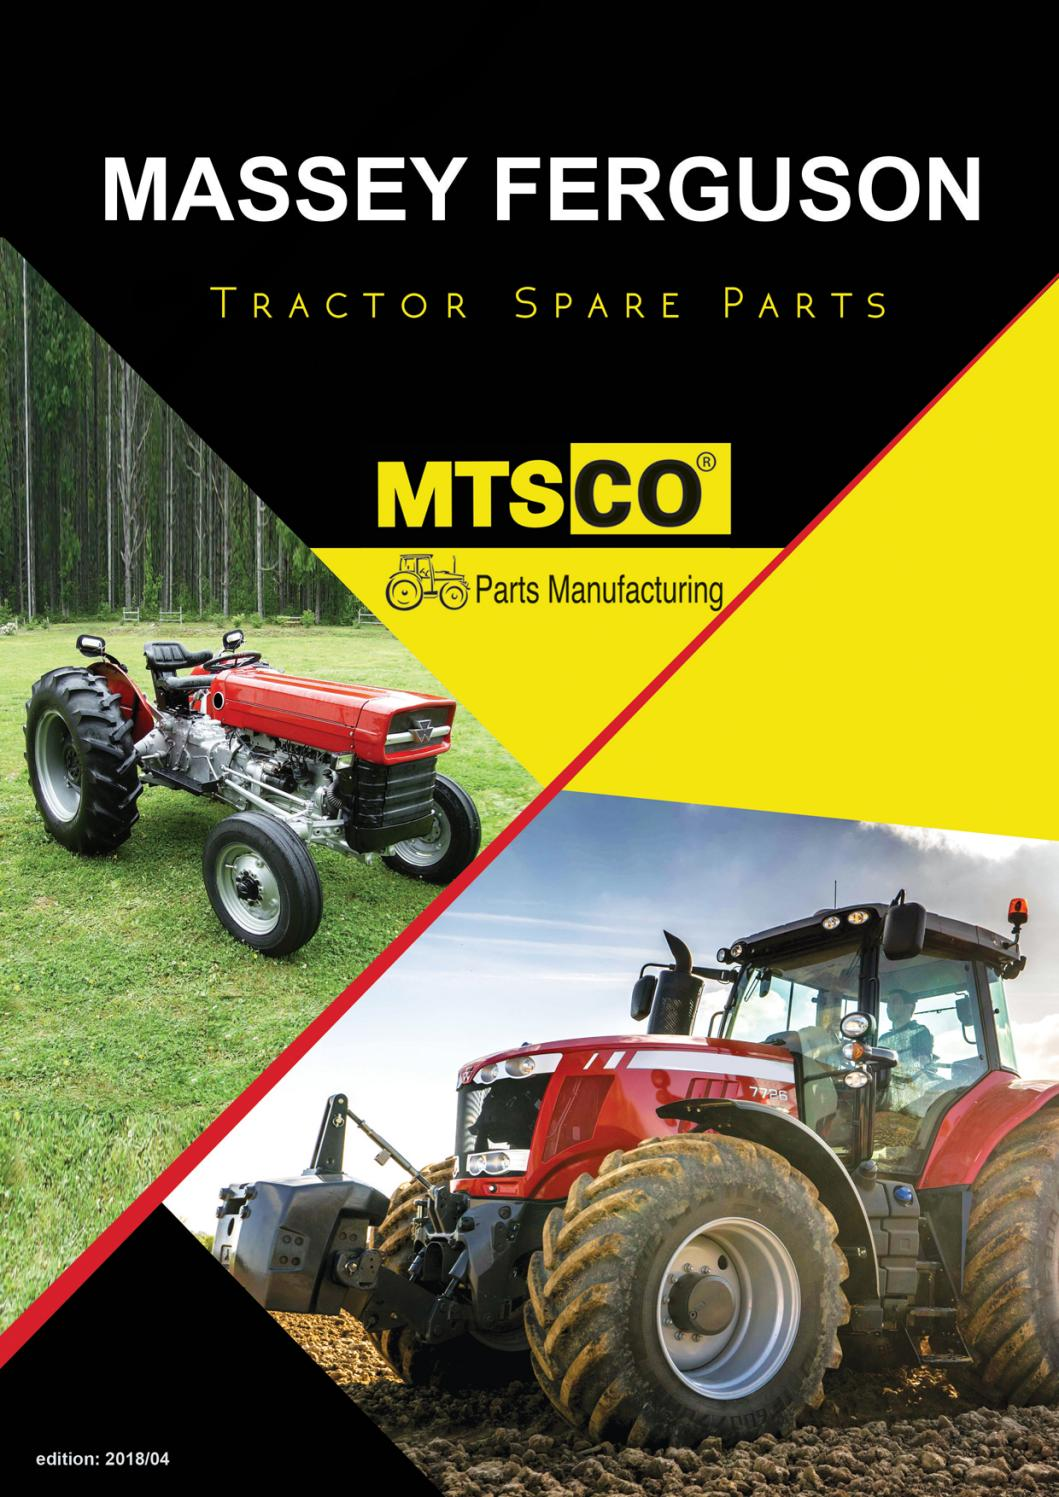 Massey Ferguson Tractor Spare Parts by MTSCO/METSAN MAKİNA